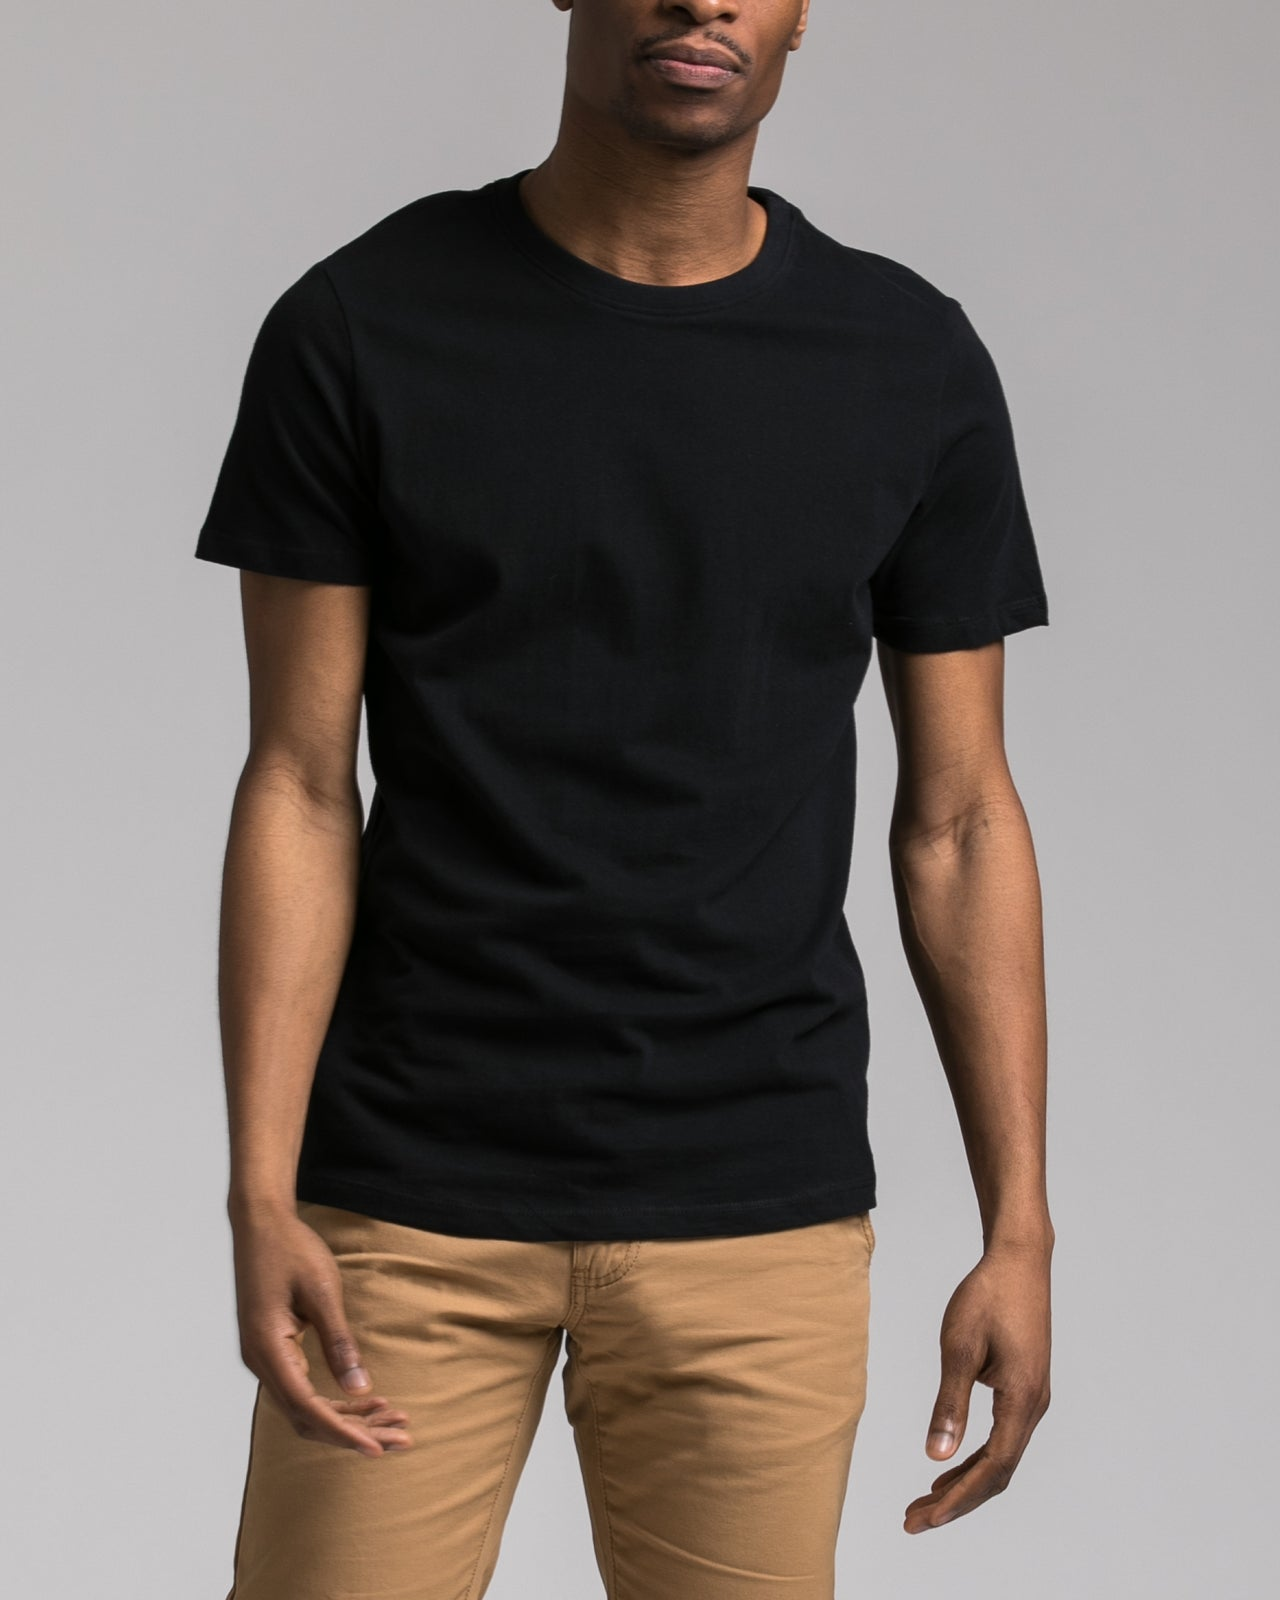 Slim Tee - Color: Black | Black